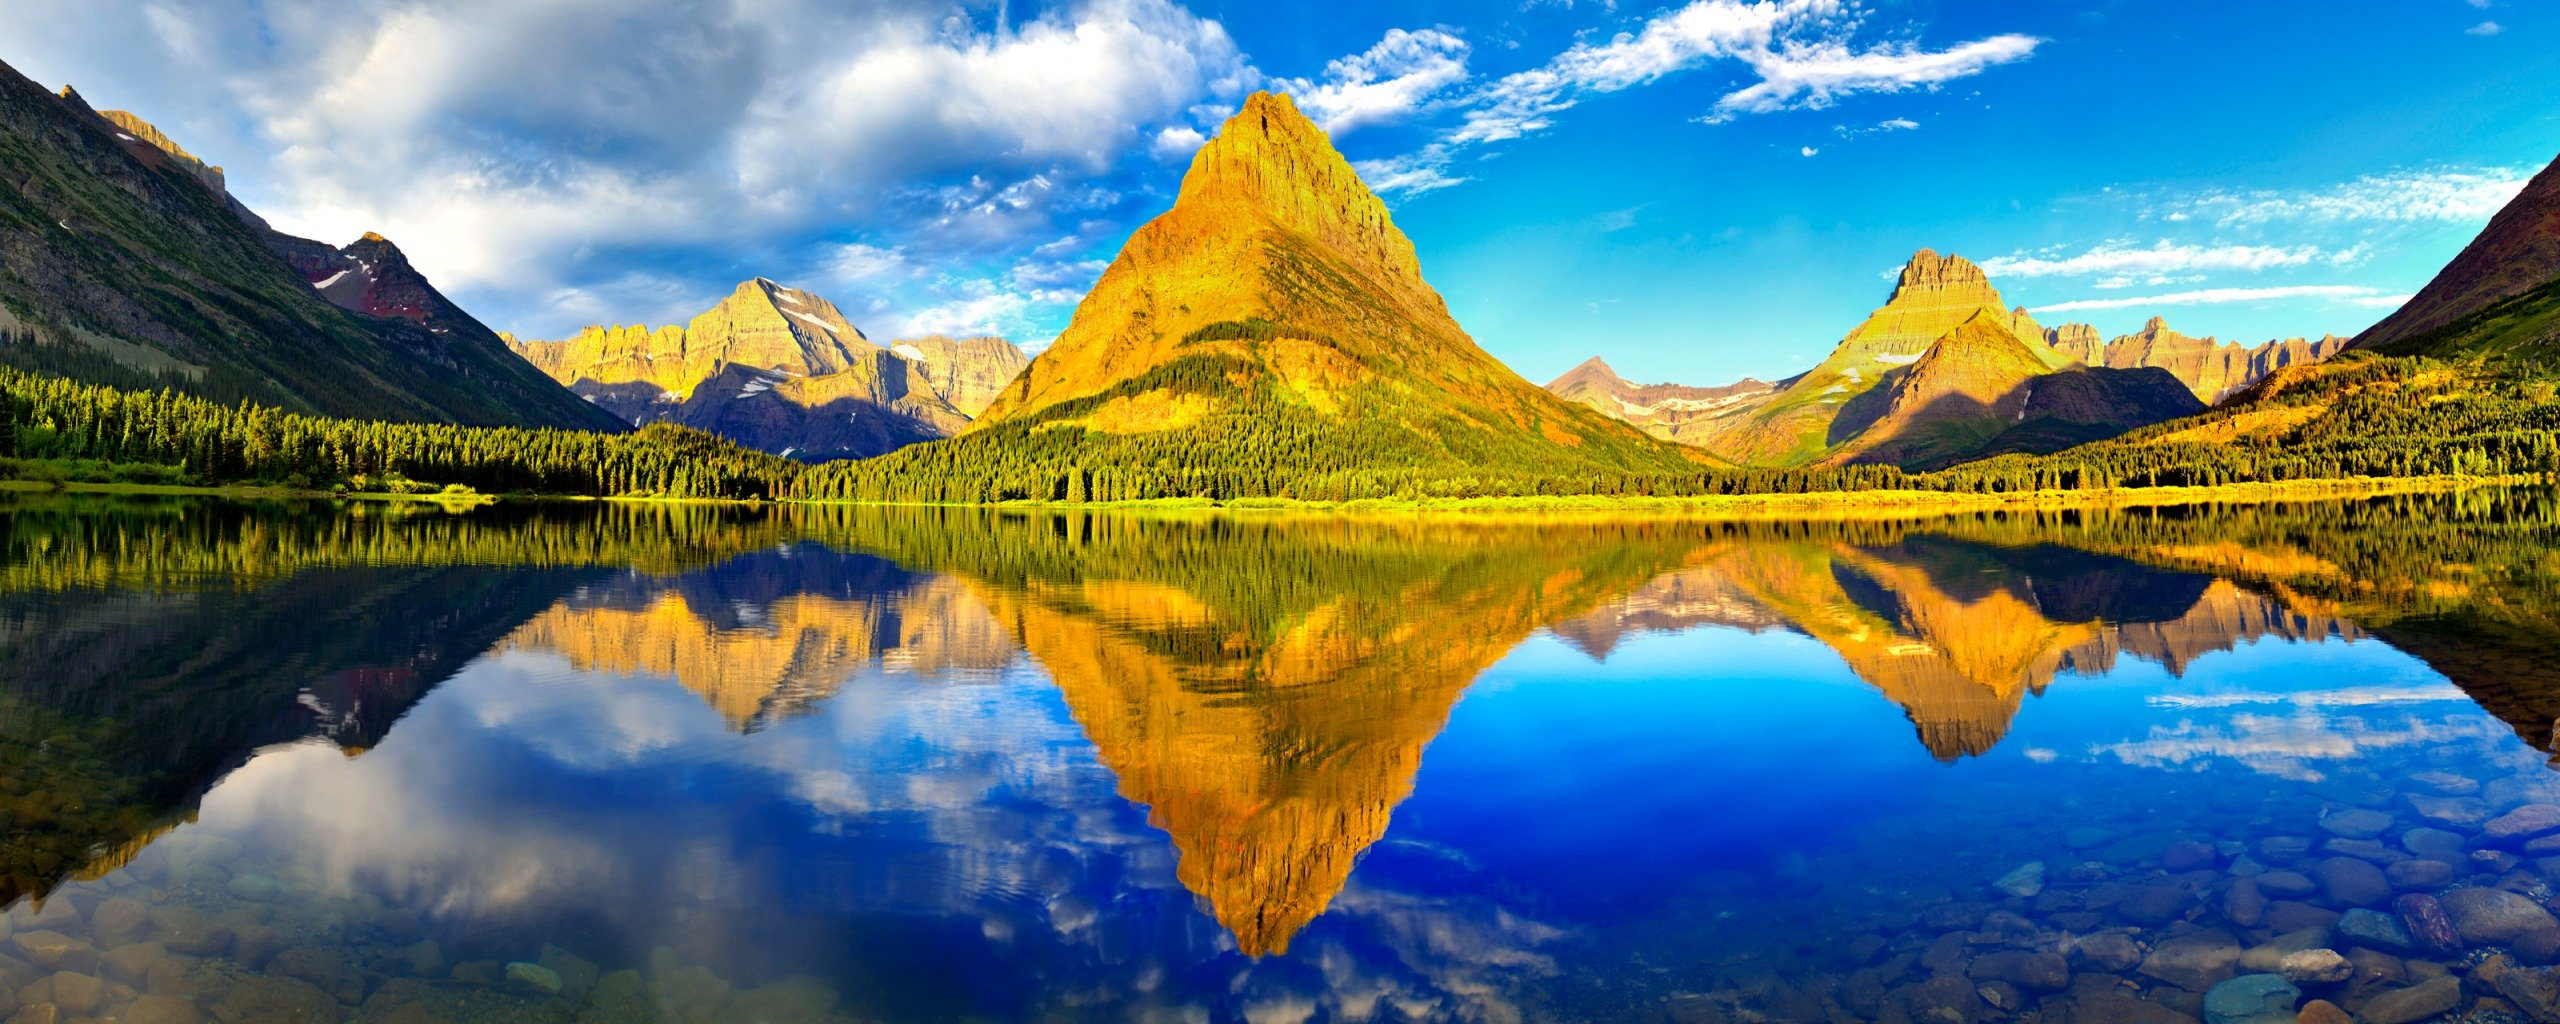 Glacier National Park Dual Monitor Wallpapers HD Wallpapers 2560x1024